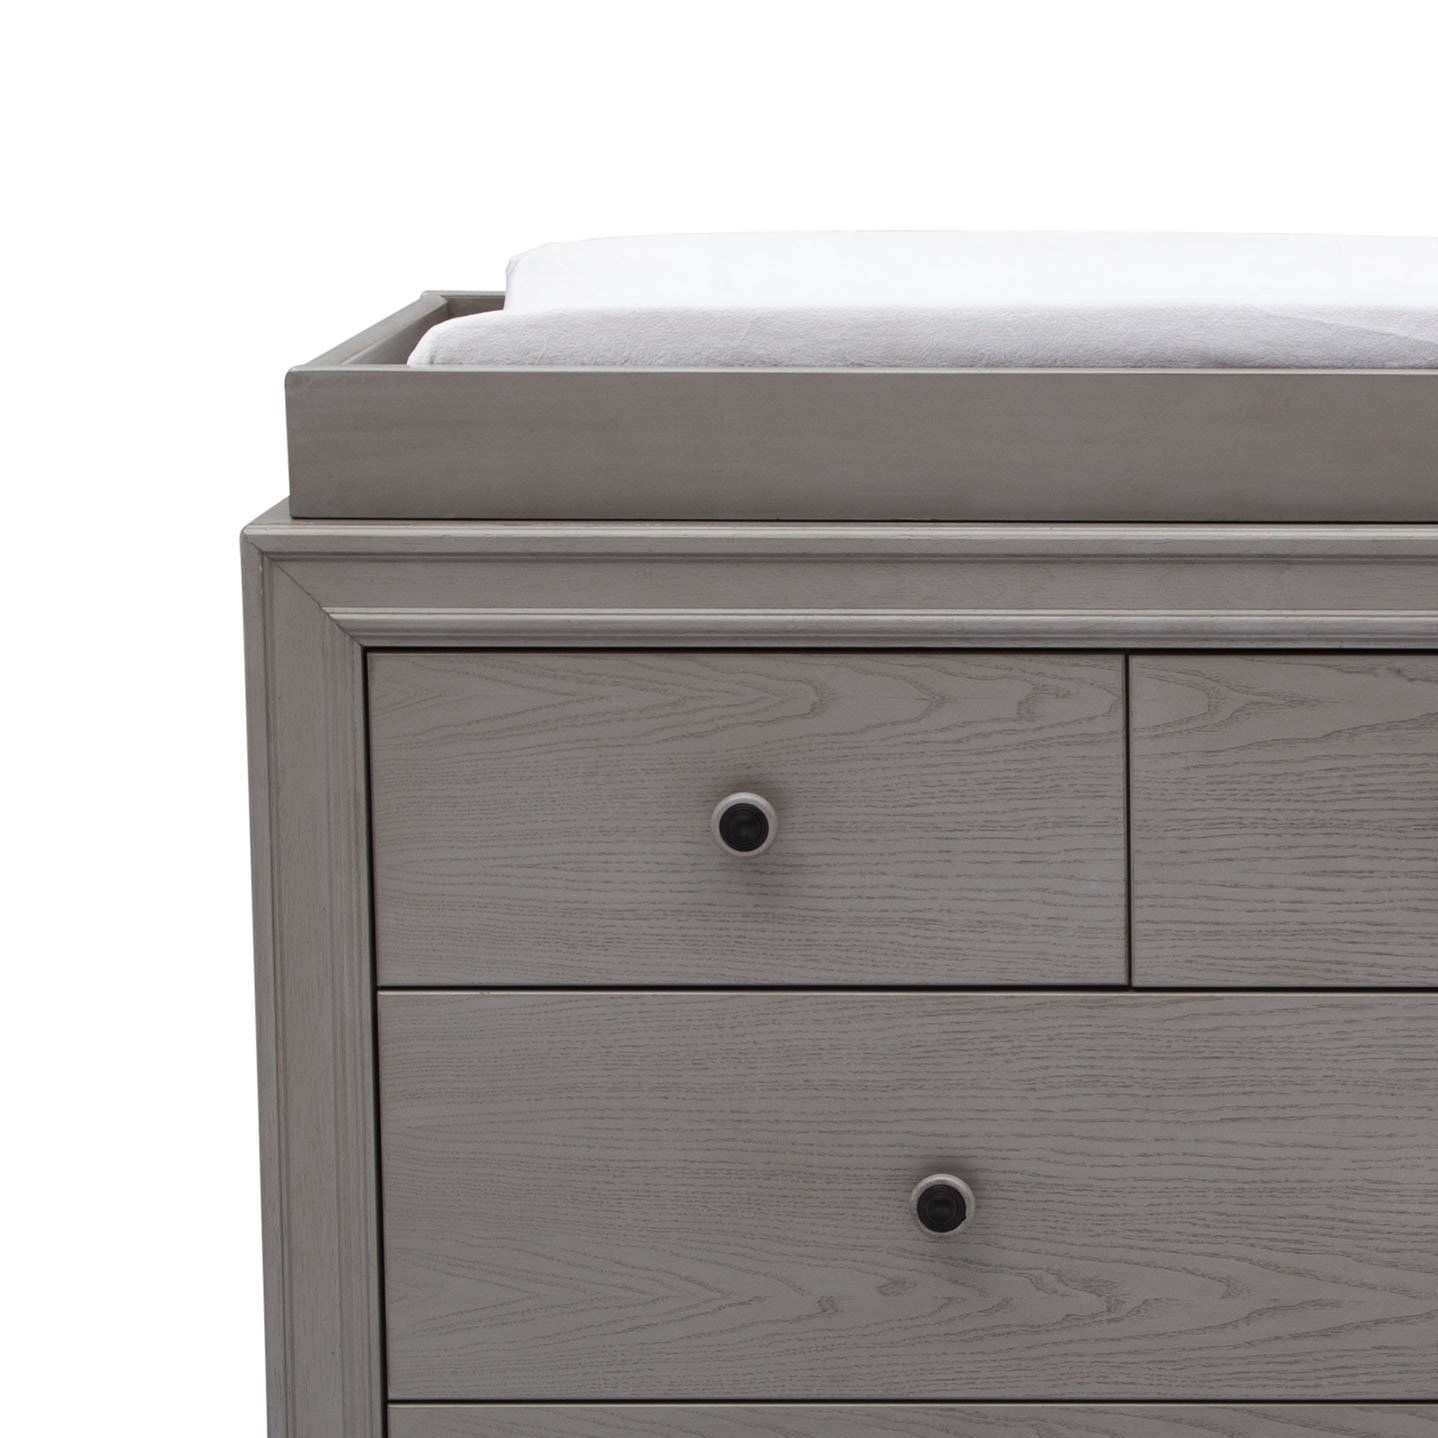 Storm Grey Convertible Crib, Dresser, Chest, Changing Top, Toddler Guardrail, Full Size Conversion Simmons Kids Ravello 6-Piece Nursery Furniture Set